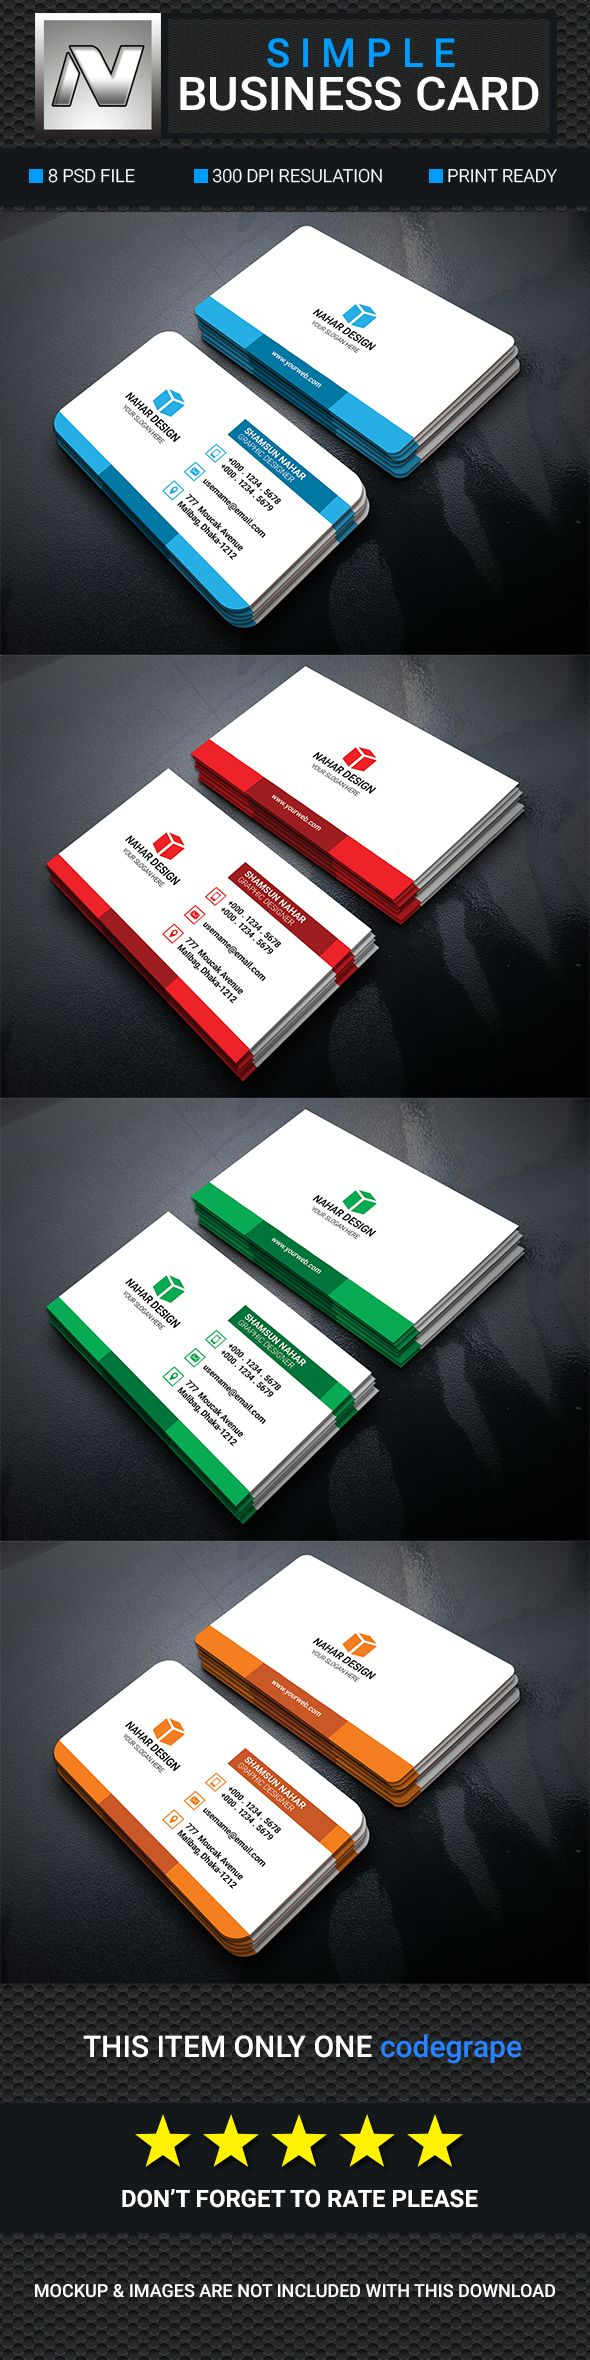 Best Business Cards For Entrepreneurs Image collections - Card ...